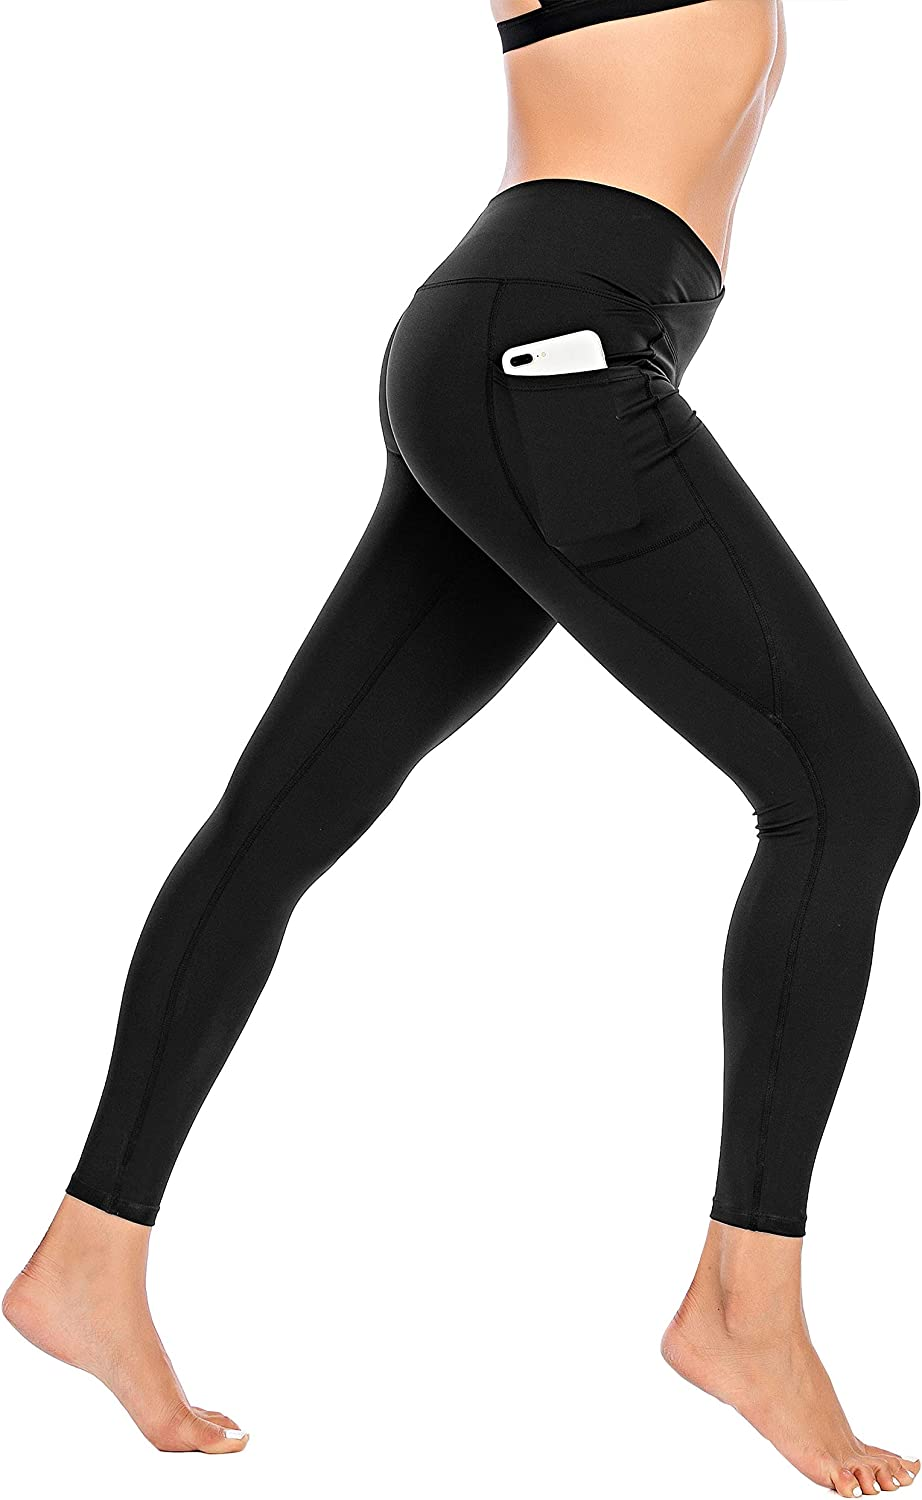 Miss Adola Workout Leggings for Women with Pocket-High Waisted Yoga Pants-Tummy Control Non-See Through Yoga Leggings: Clothing